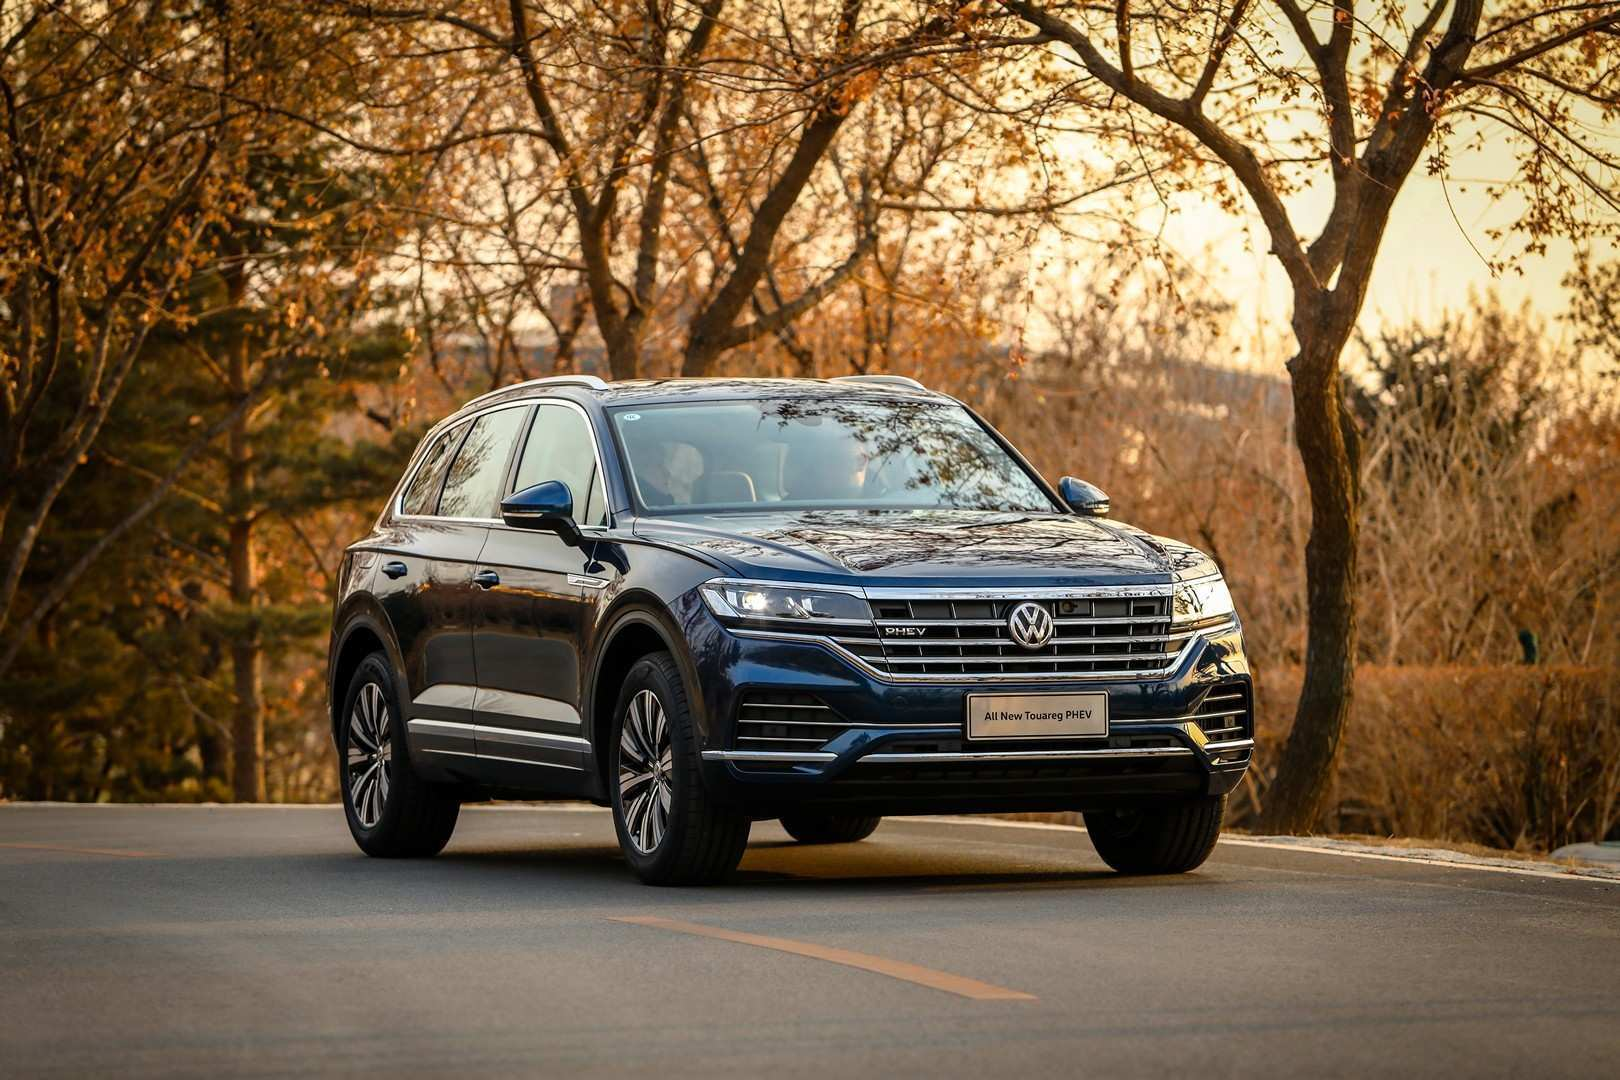 90 A 2019 Vw Touareg Tdi New Model And Performance